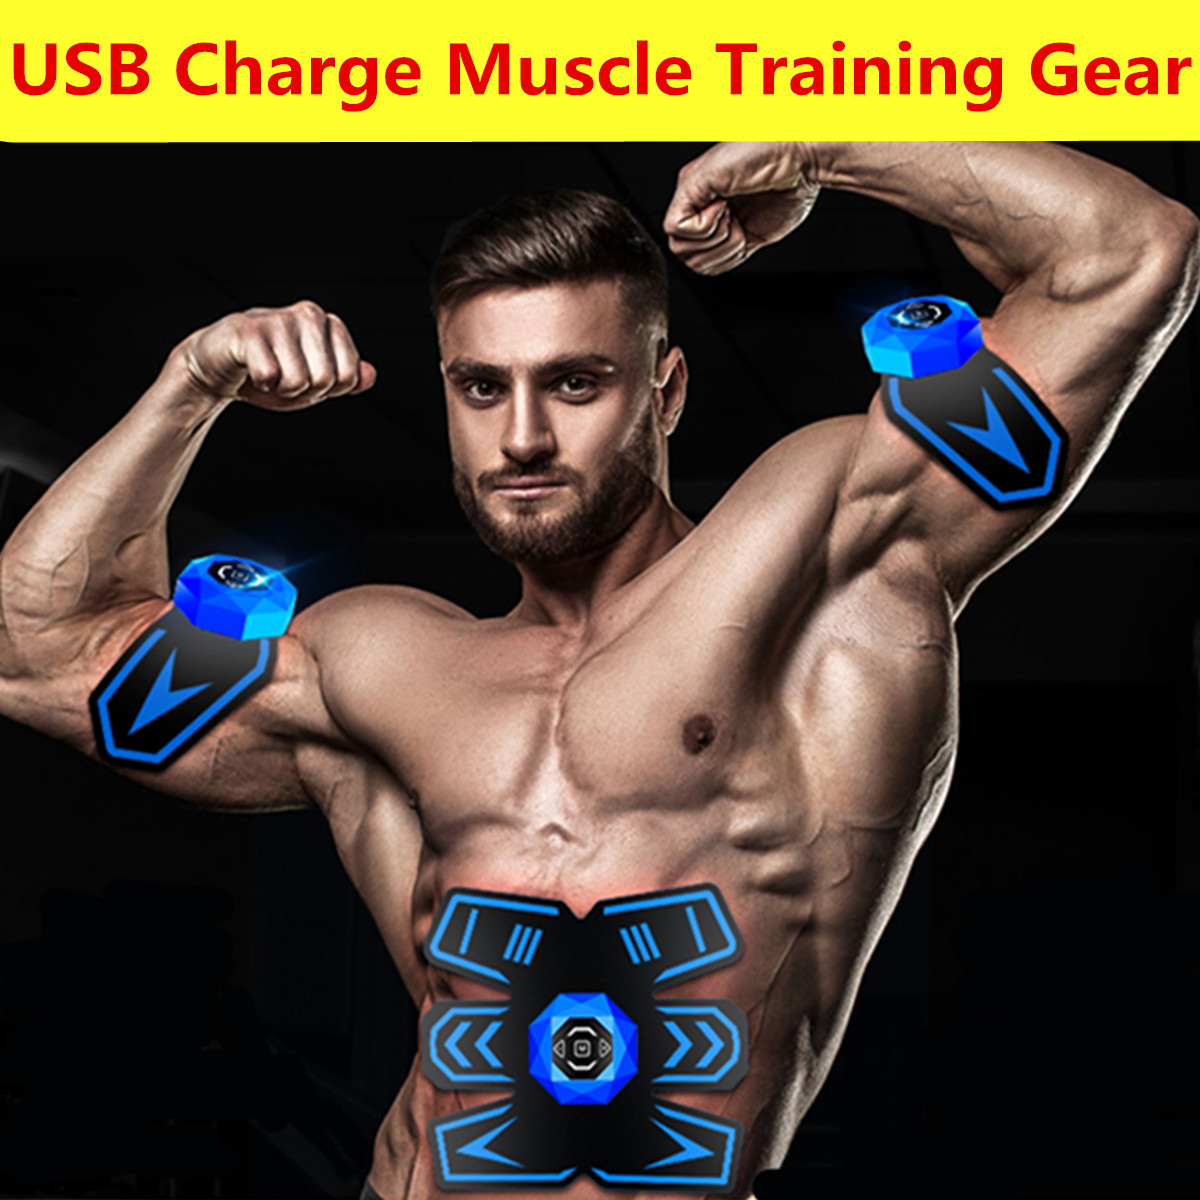 Ab Rollers Fitness & Body Building Smart Fitness Gym Abs Stimulator Muscle Training Gear Toning Belt Home Exercise Fit Pad Ultimate Abs Arm Sports Stickers